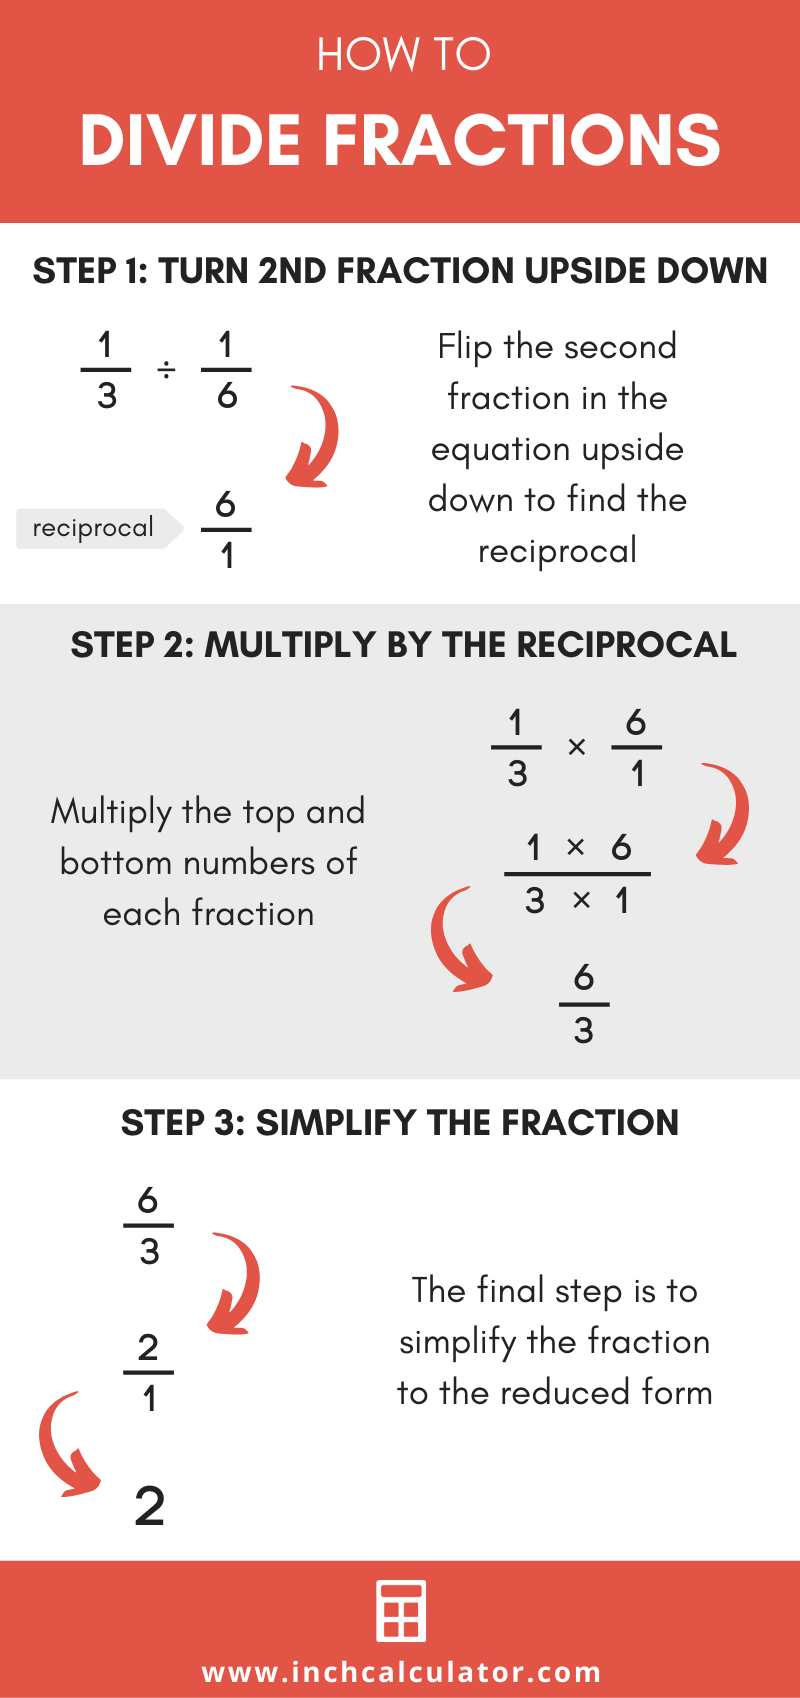 Illustration showing how to divide two fractions step-by-step